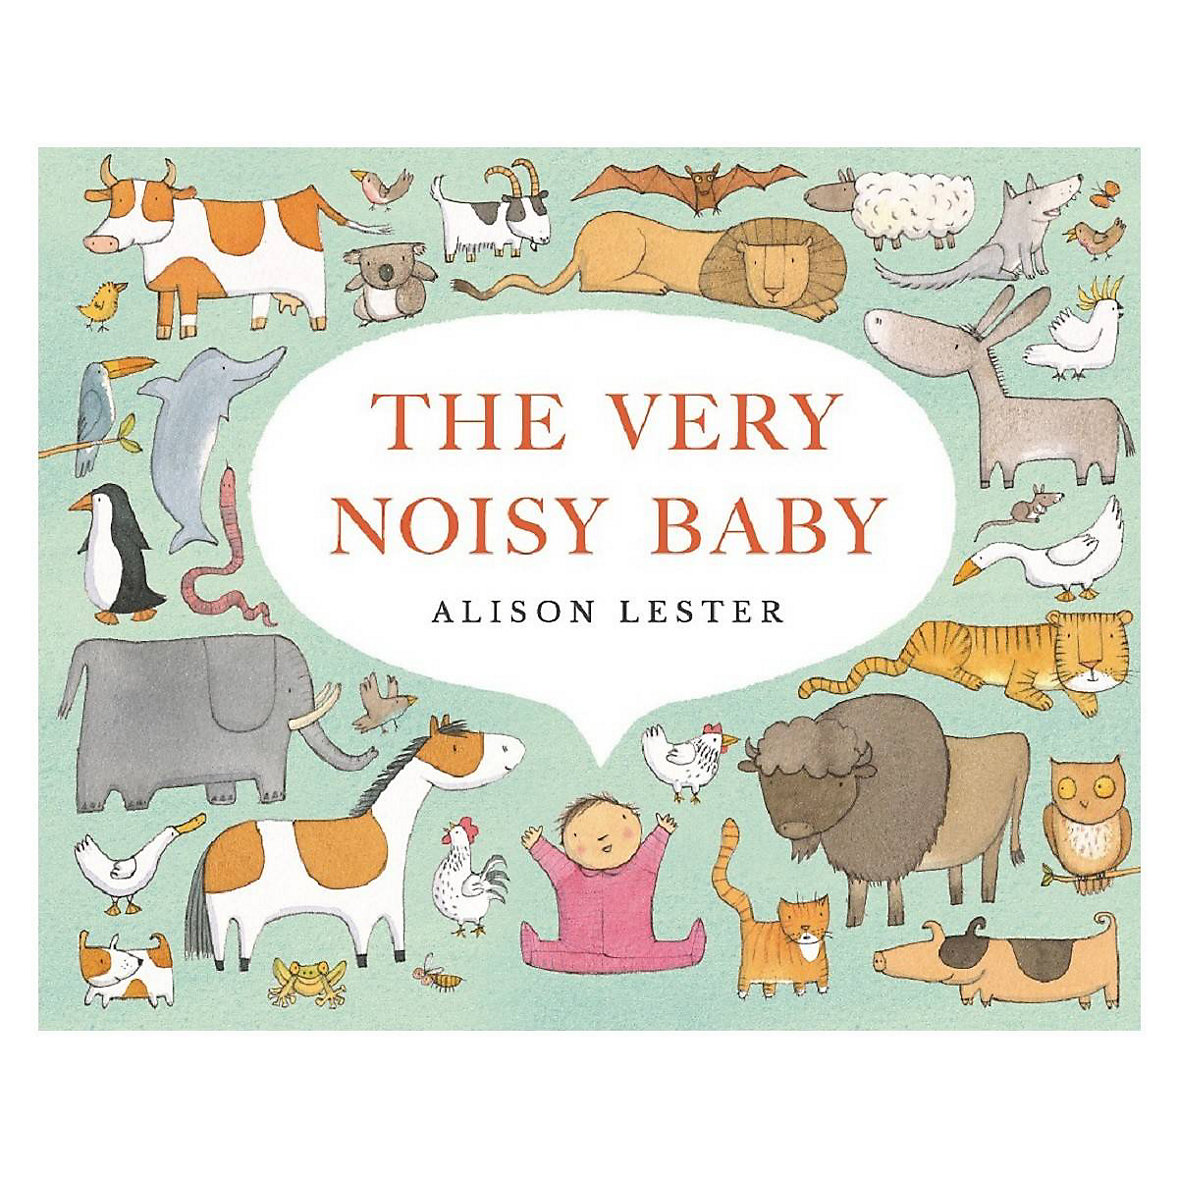 The Very Noisy Baby - Alison Lester